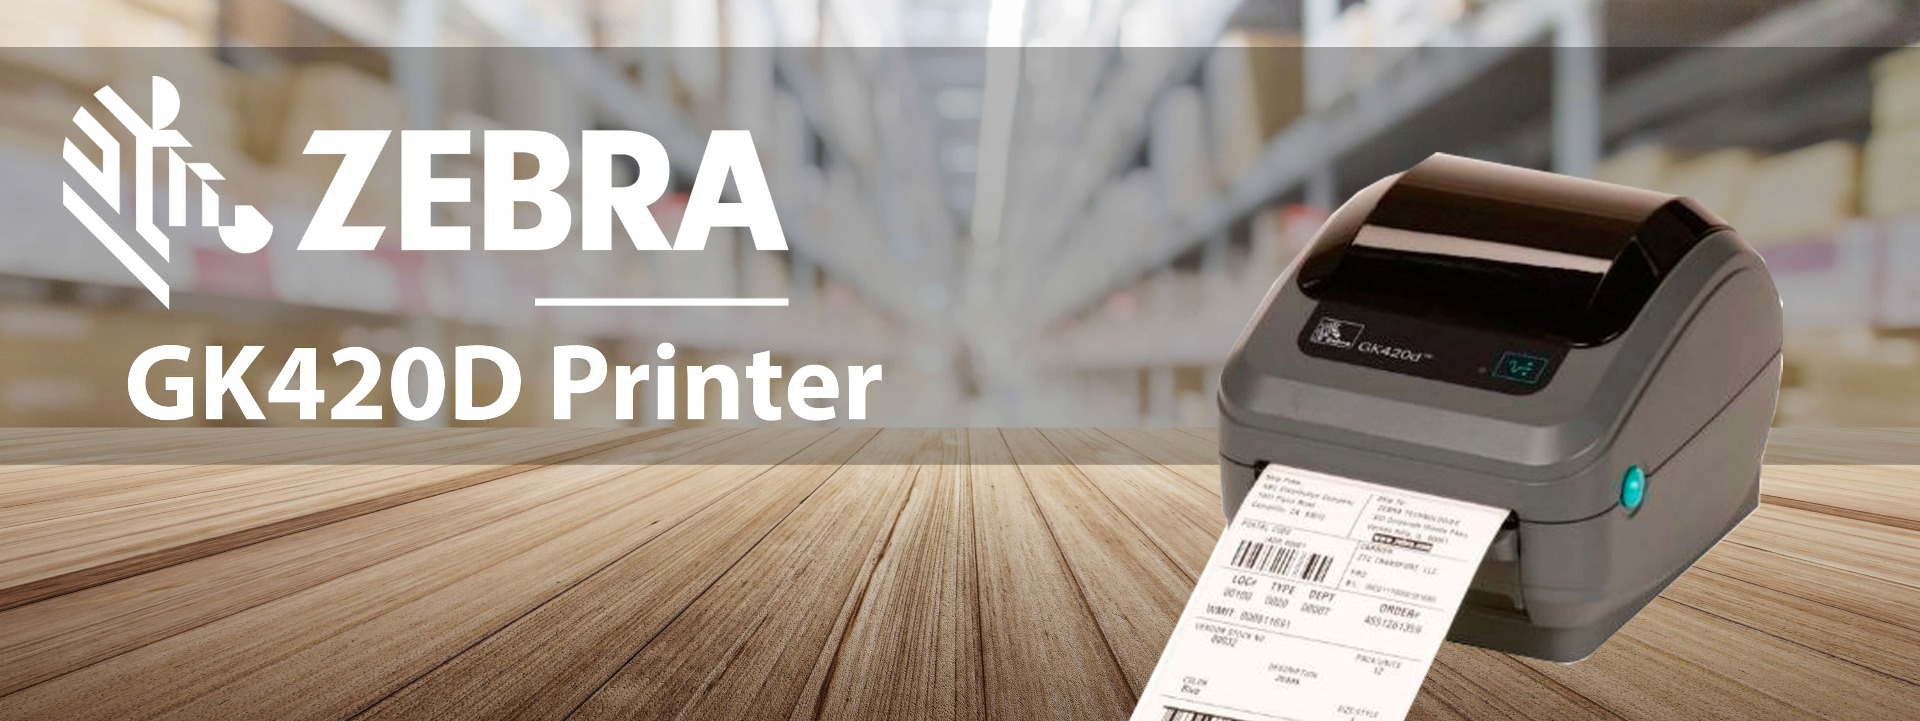 Zebra GK420D direct thermal printer banner